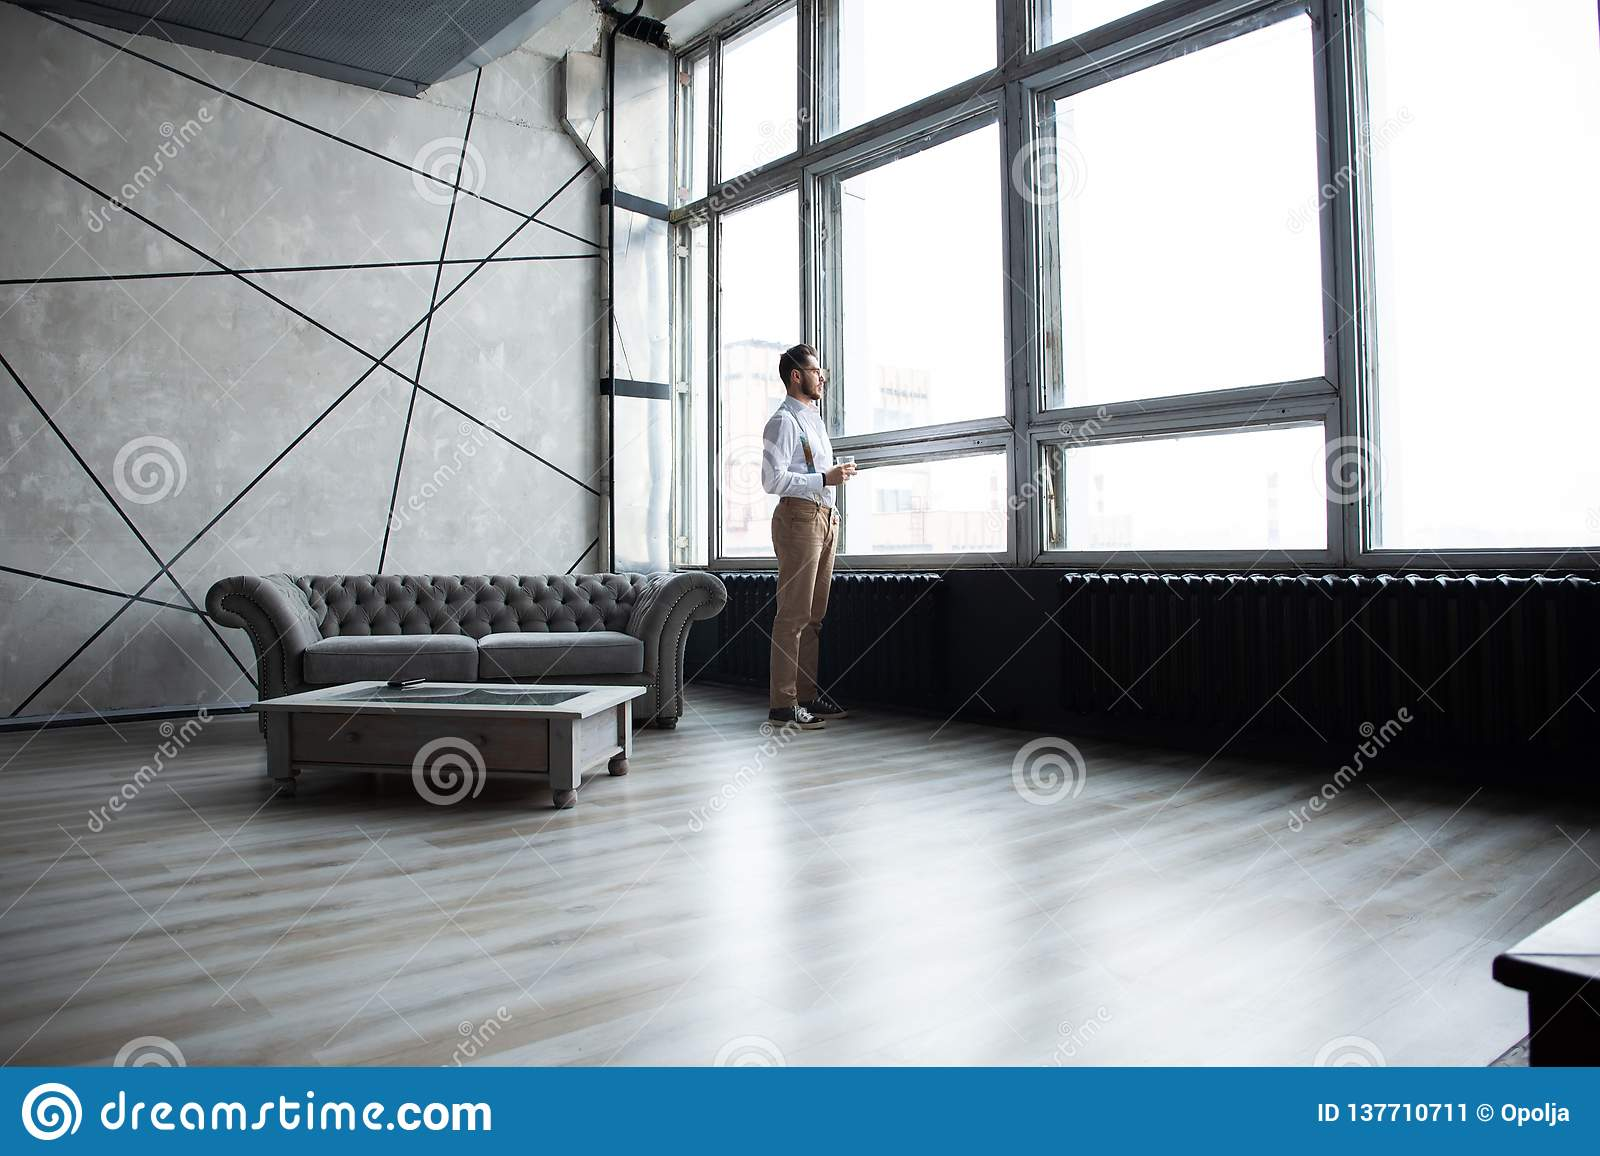 Success concept. Stylish young bearded man is standing near the window and looking far. He is in a suit, pensive and